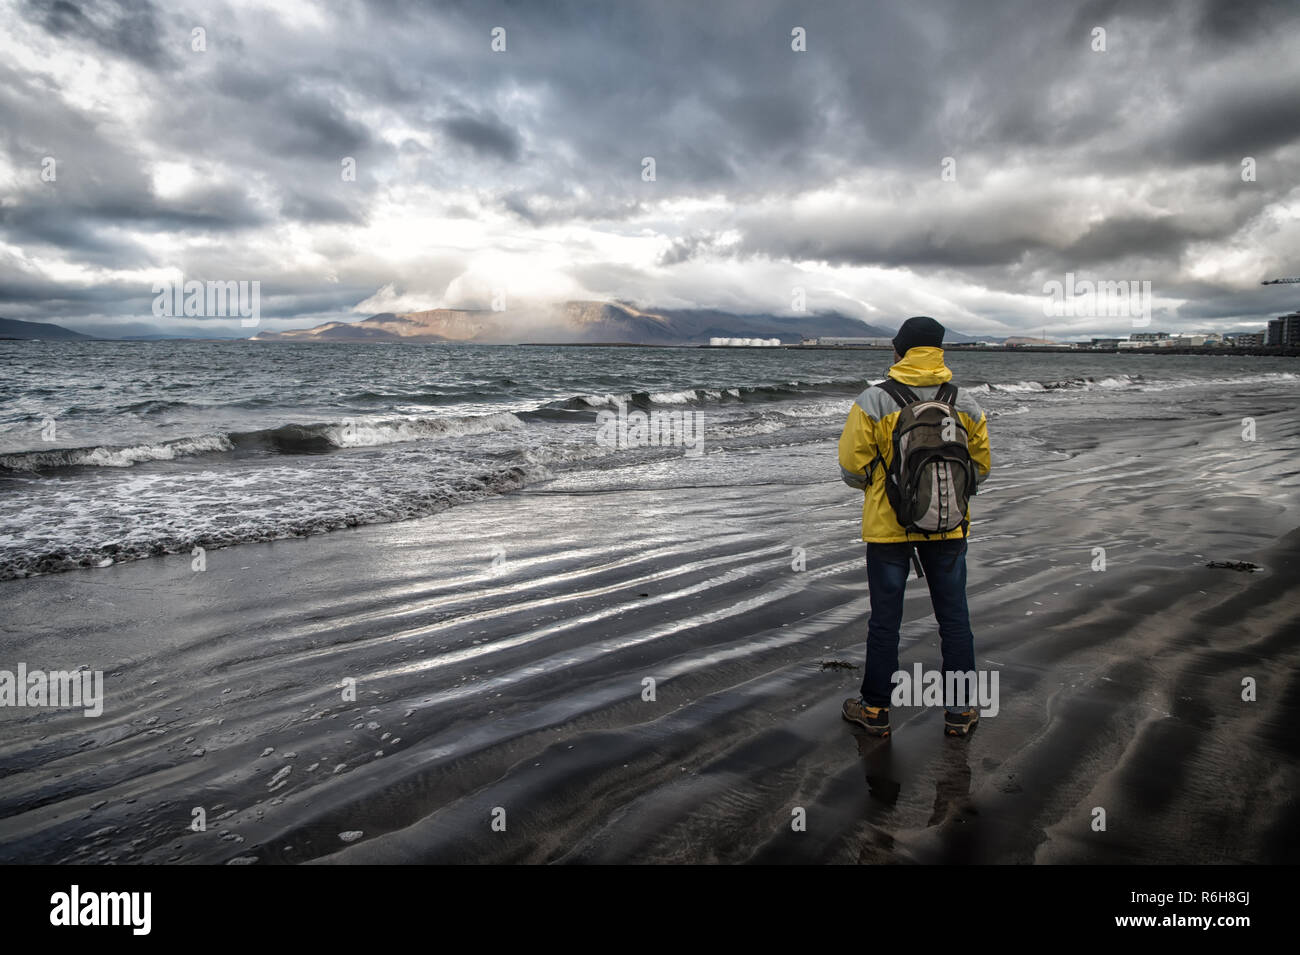 Tourist well equipment ready explore scandinavian or nordic country. Tourist on sea background. Man tourist wear warm protective clothes for cold climate conditions. Tourist traveller concept. - Stock Image